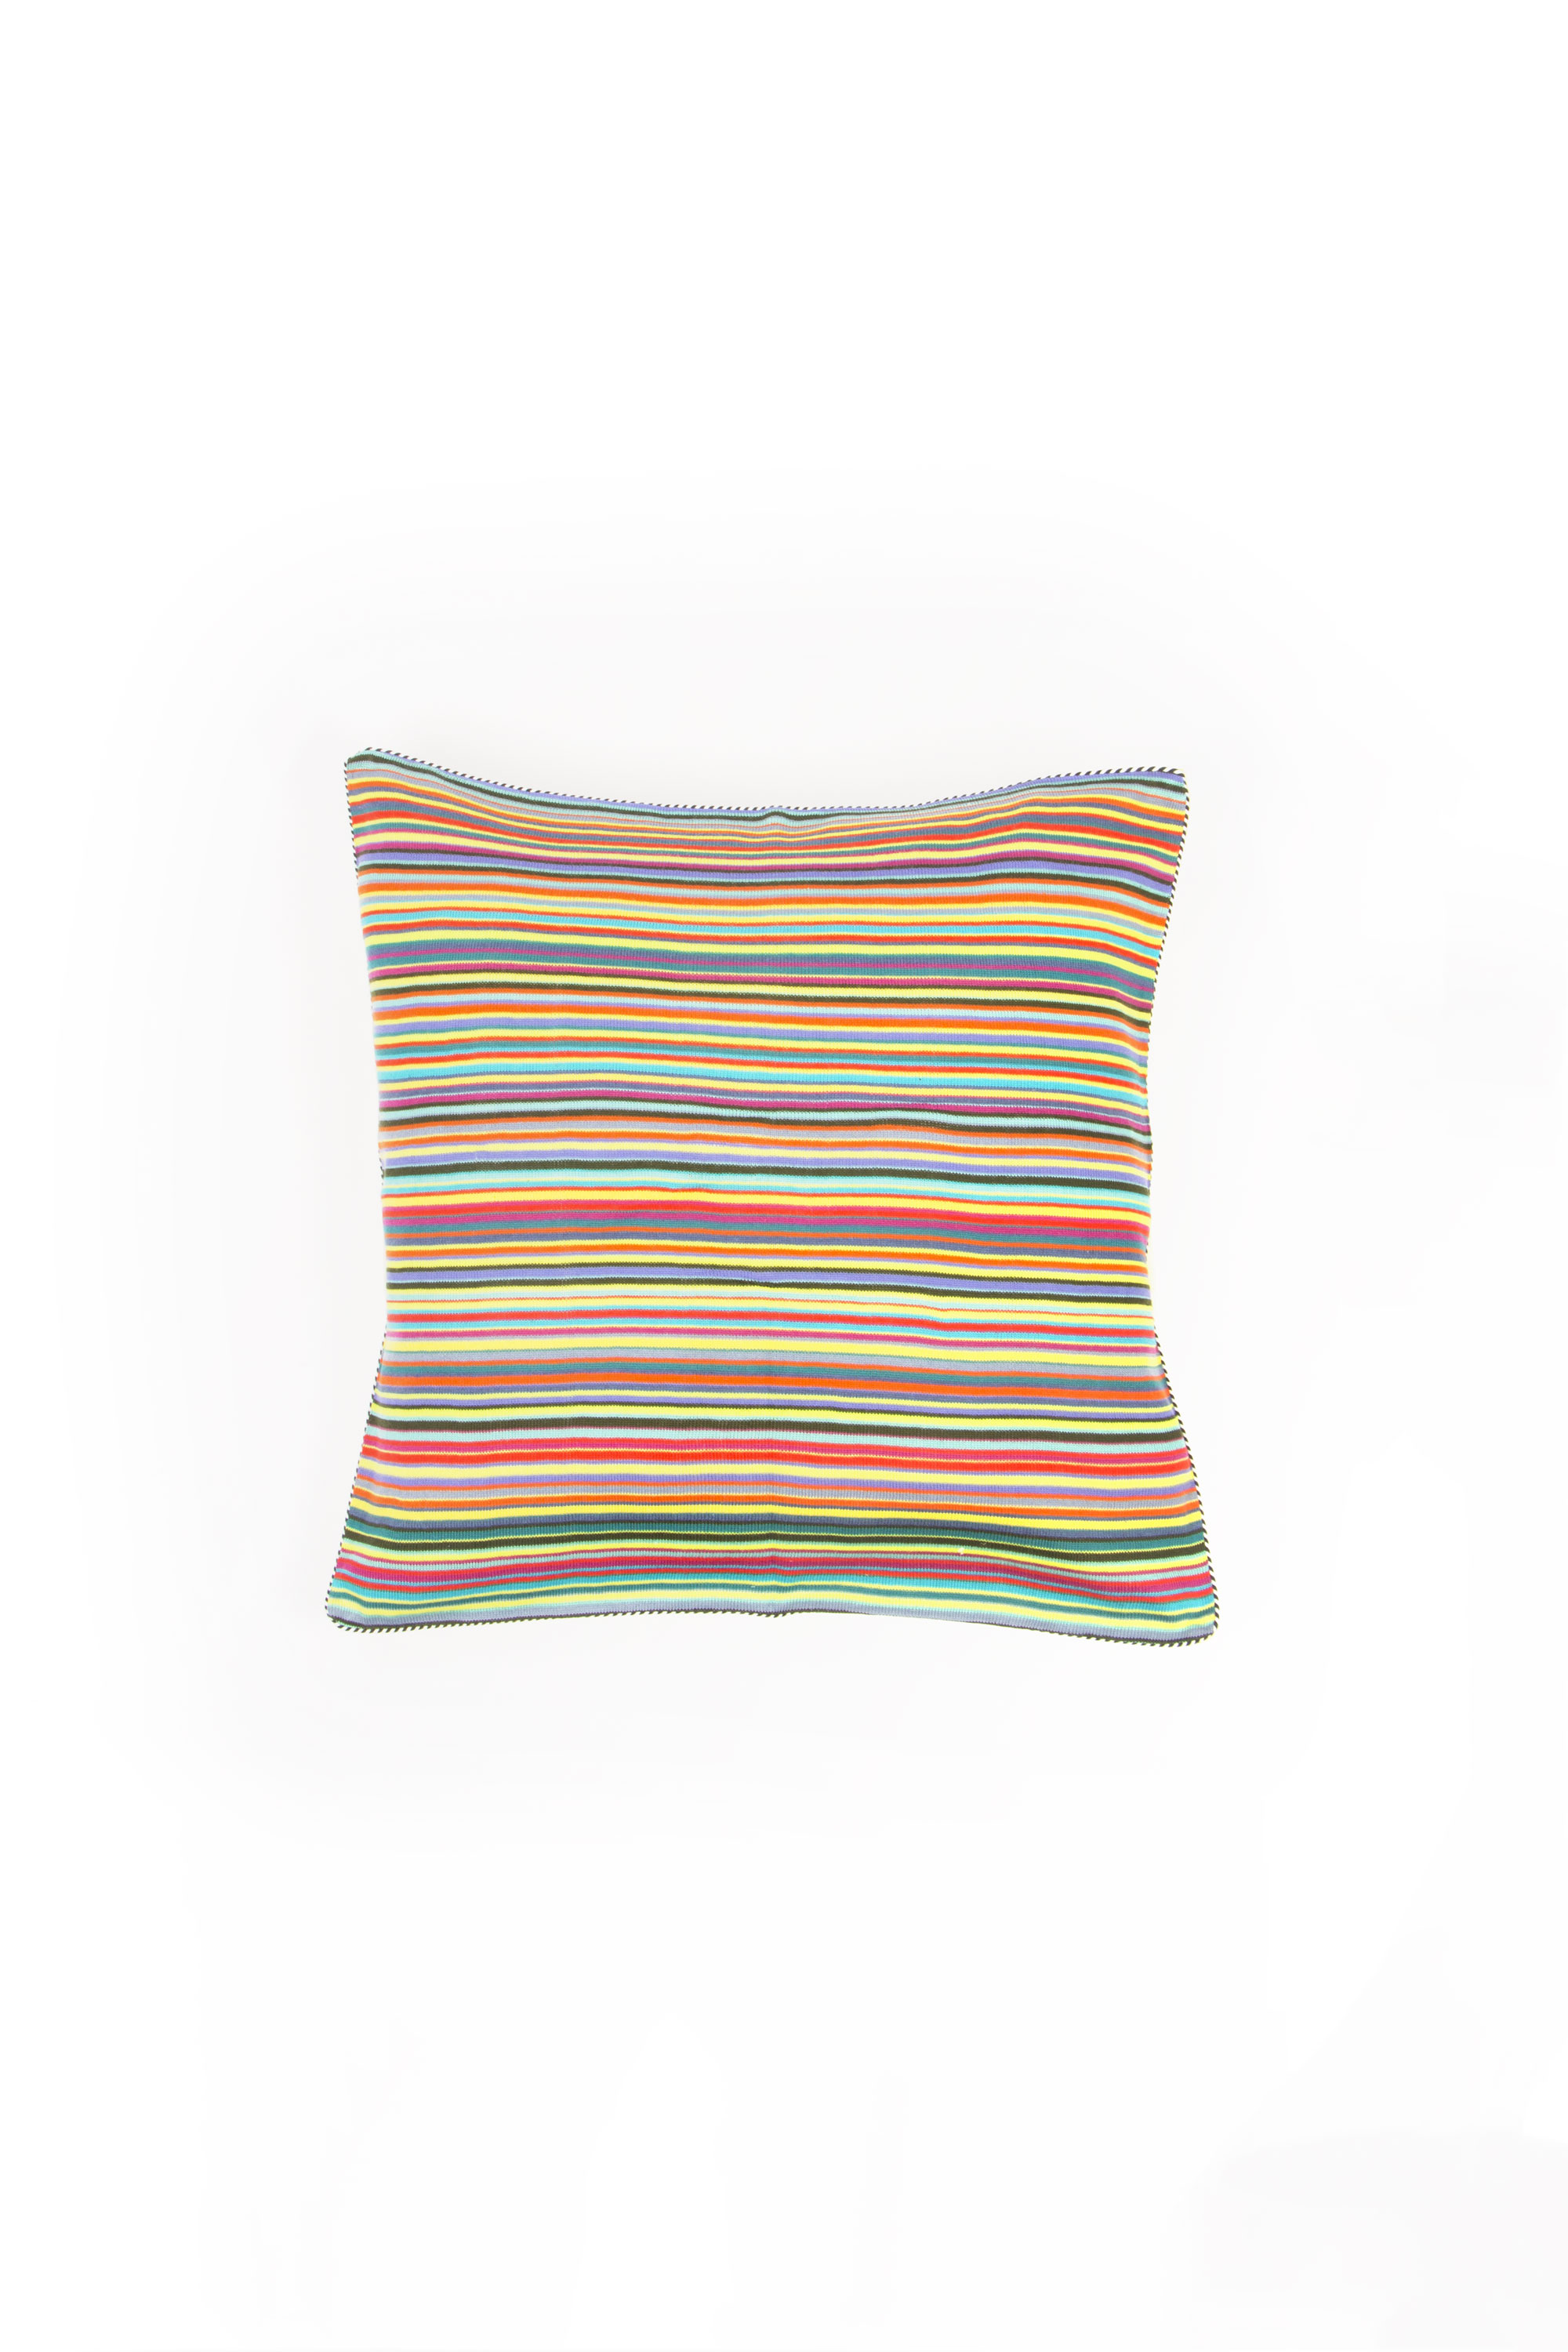 Small Knitted cushion Solo